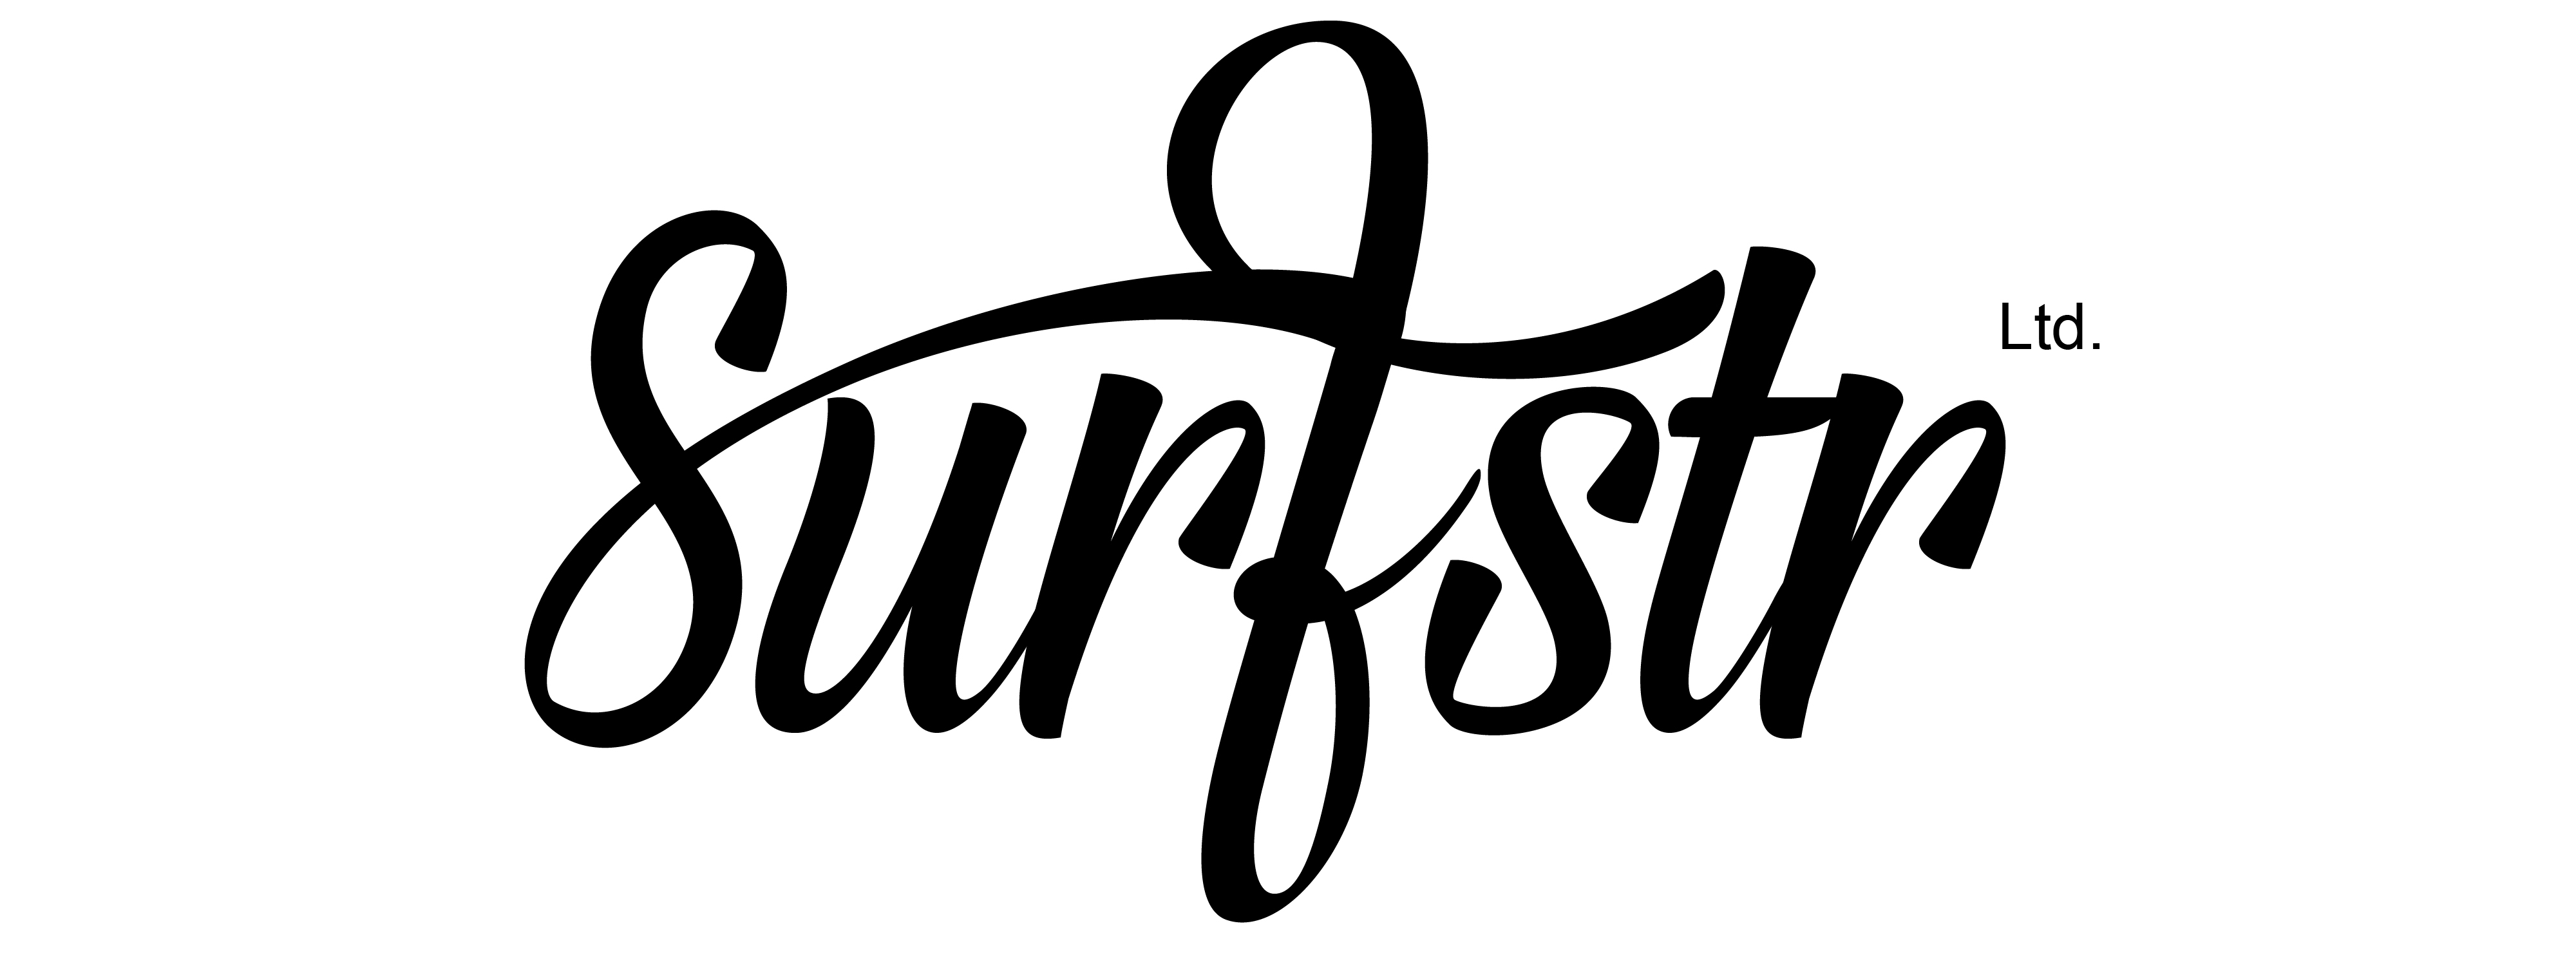 Surfstr high resolution black logo jpg